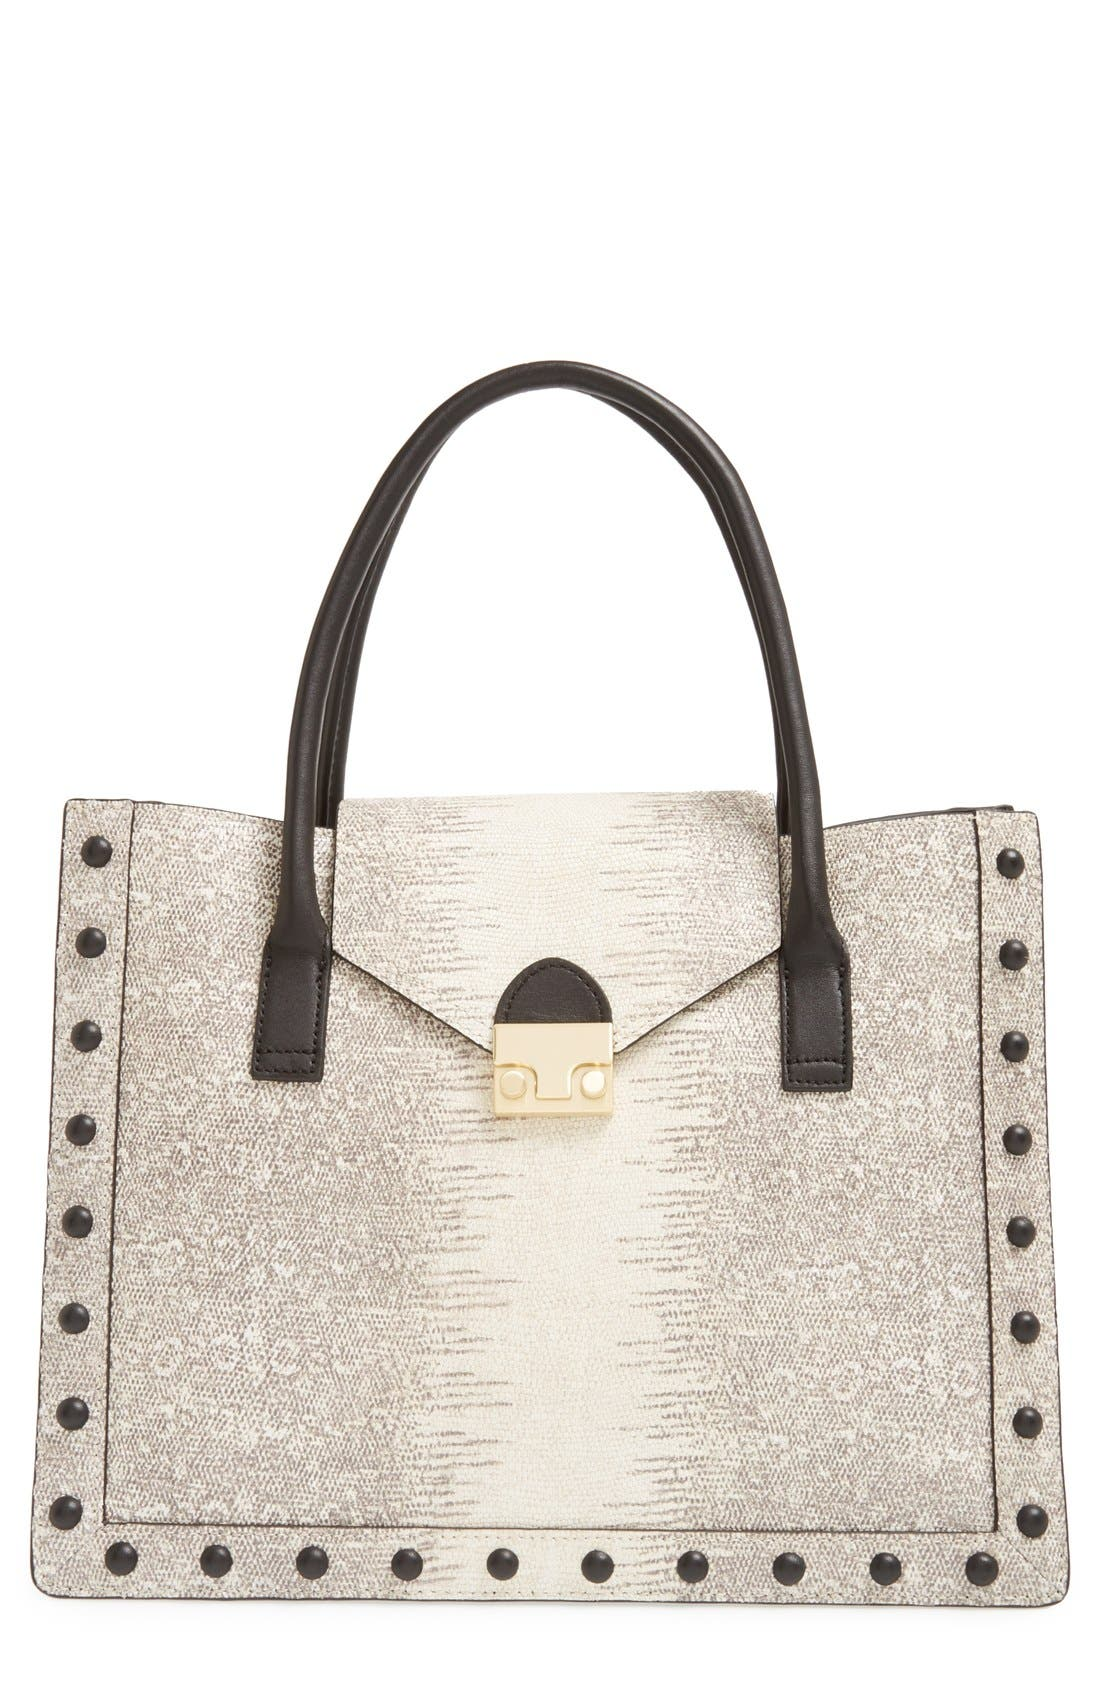 Alternate Image 1 Selected - Loeffler Randall 'Work' Lizard Embossed Tote